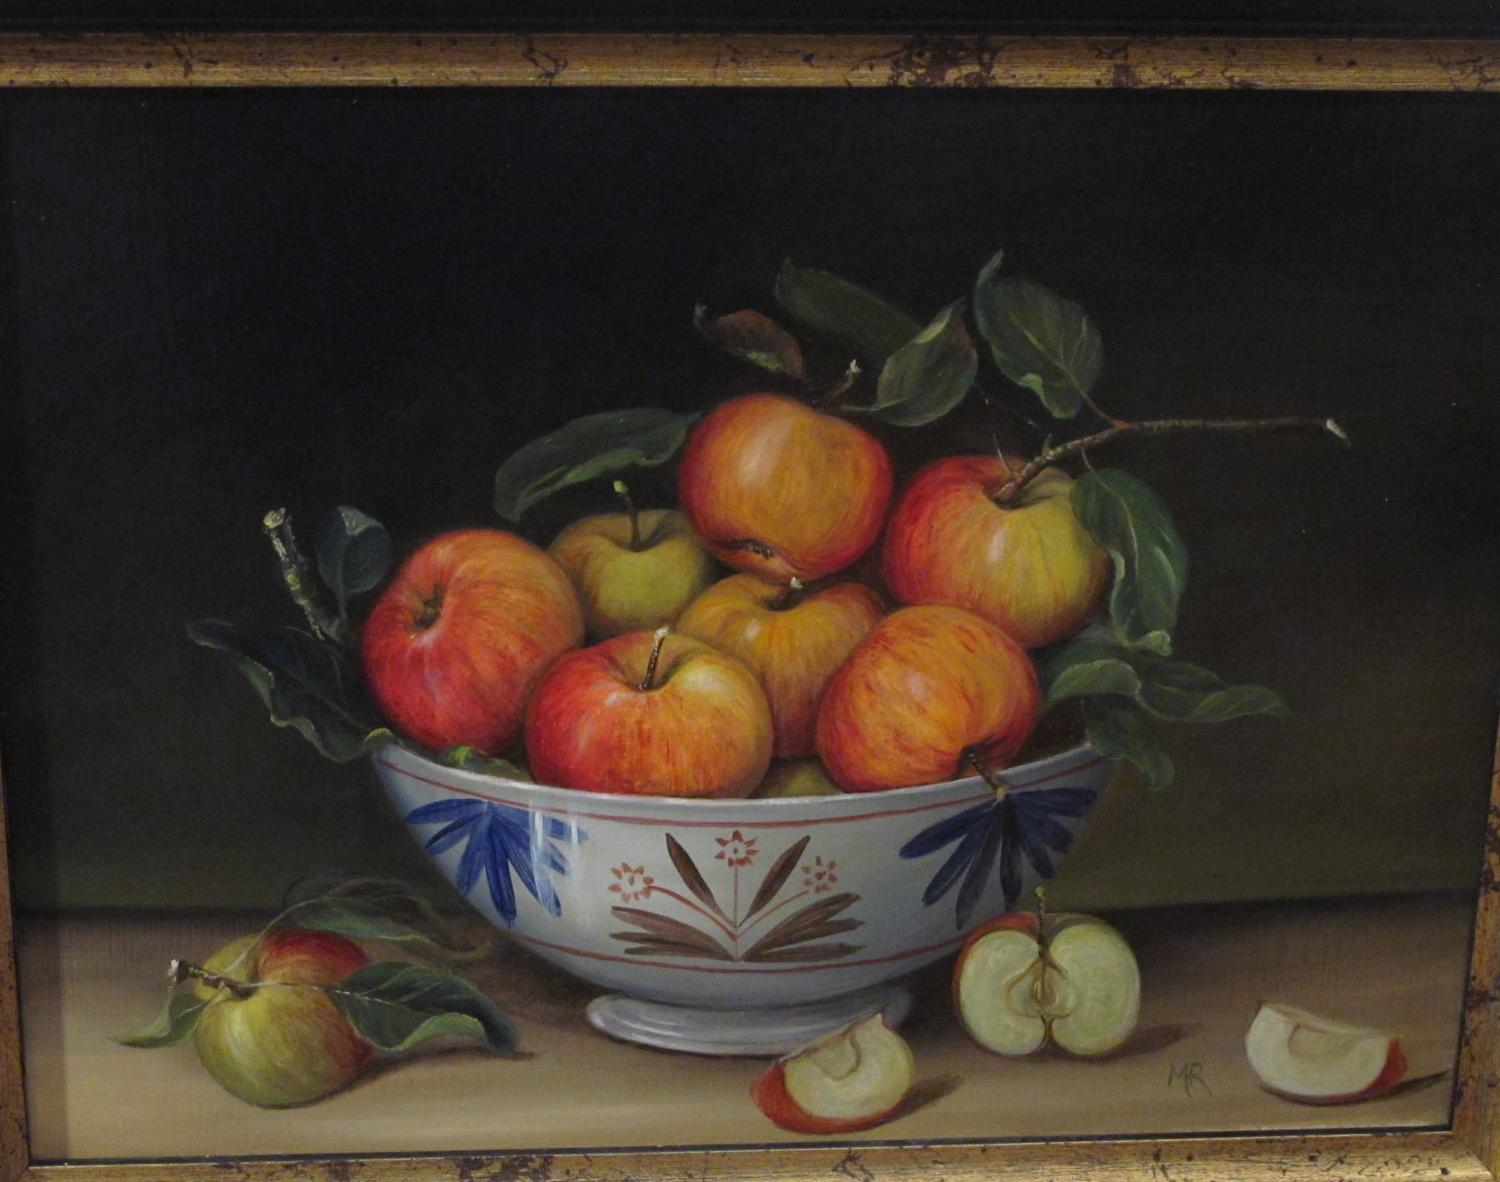 Painting of apples